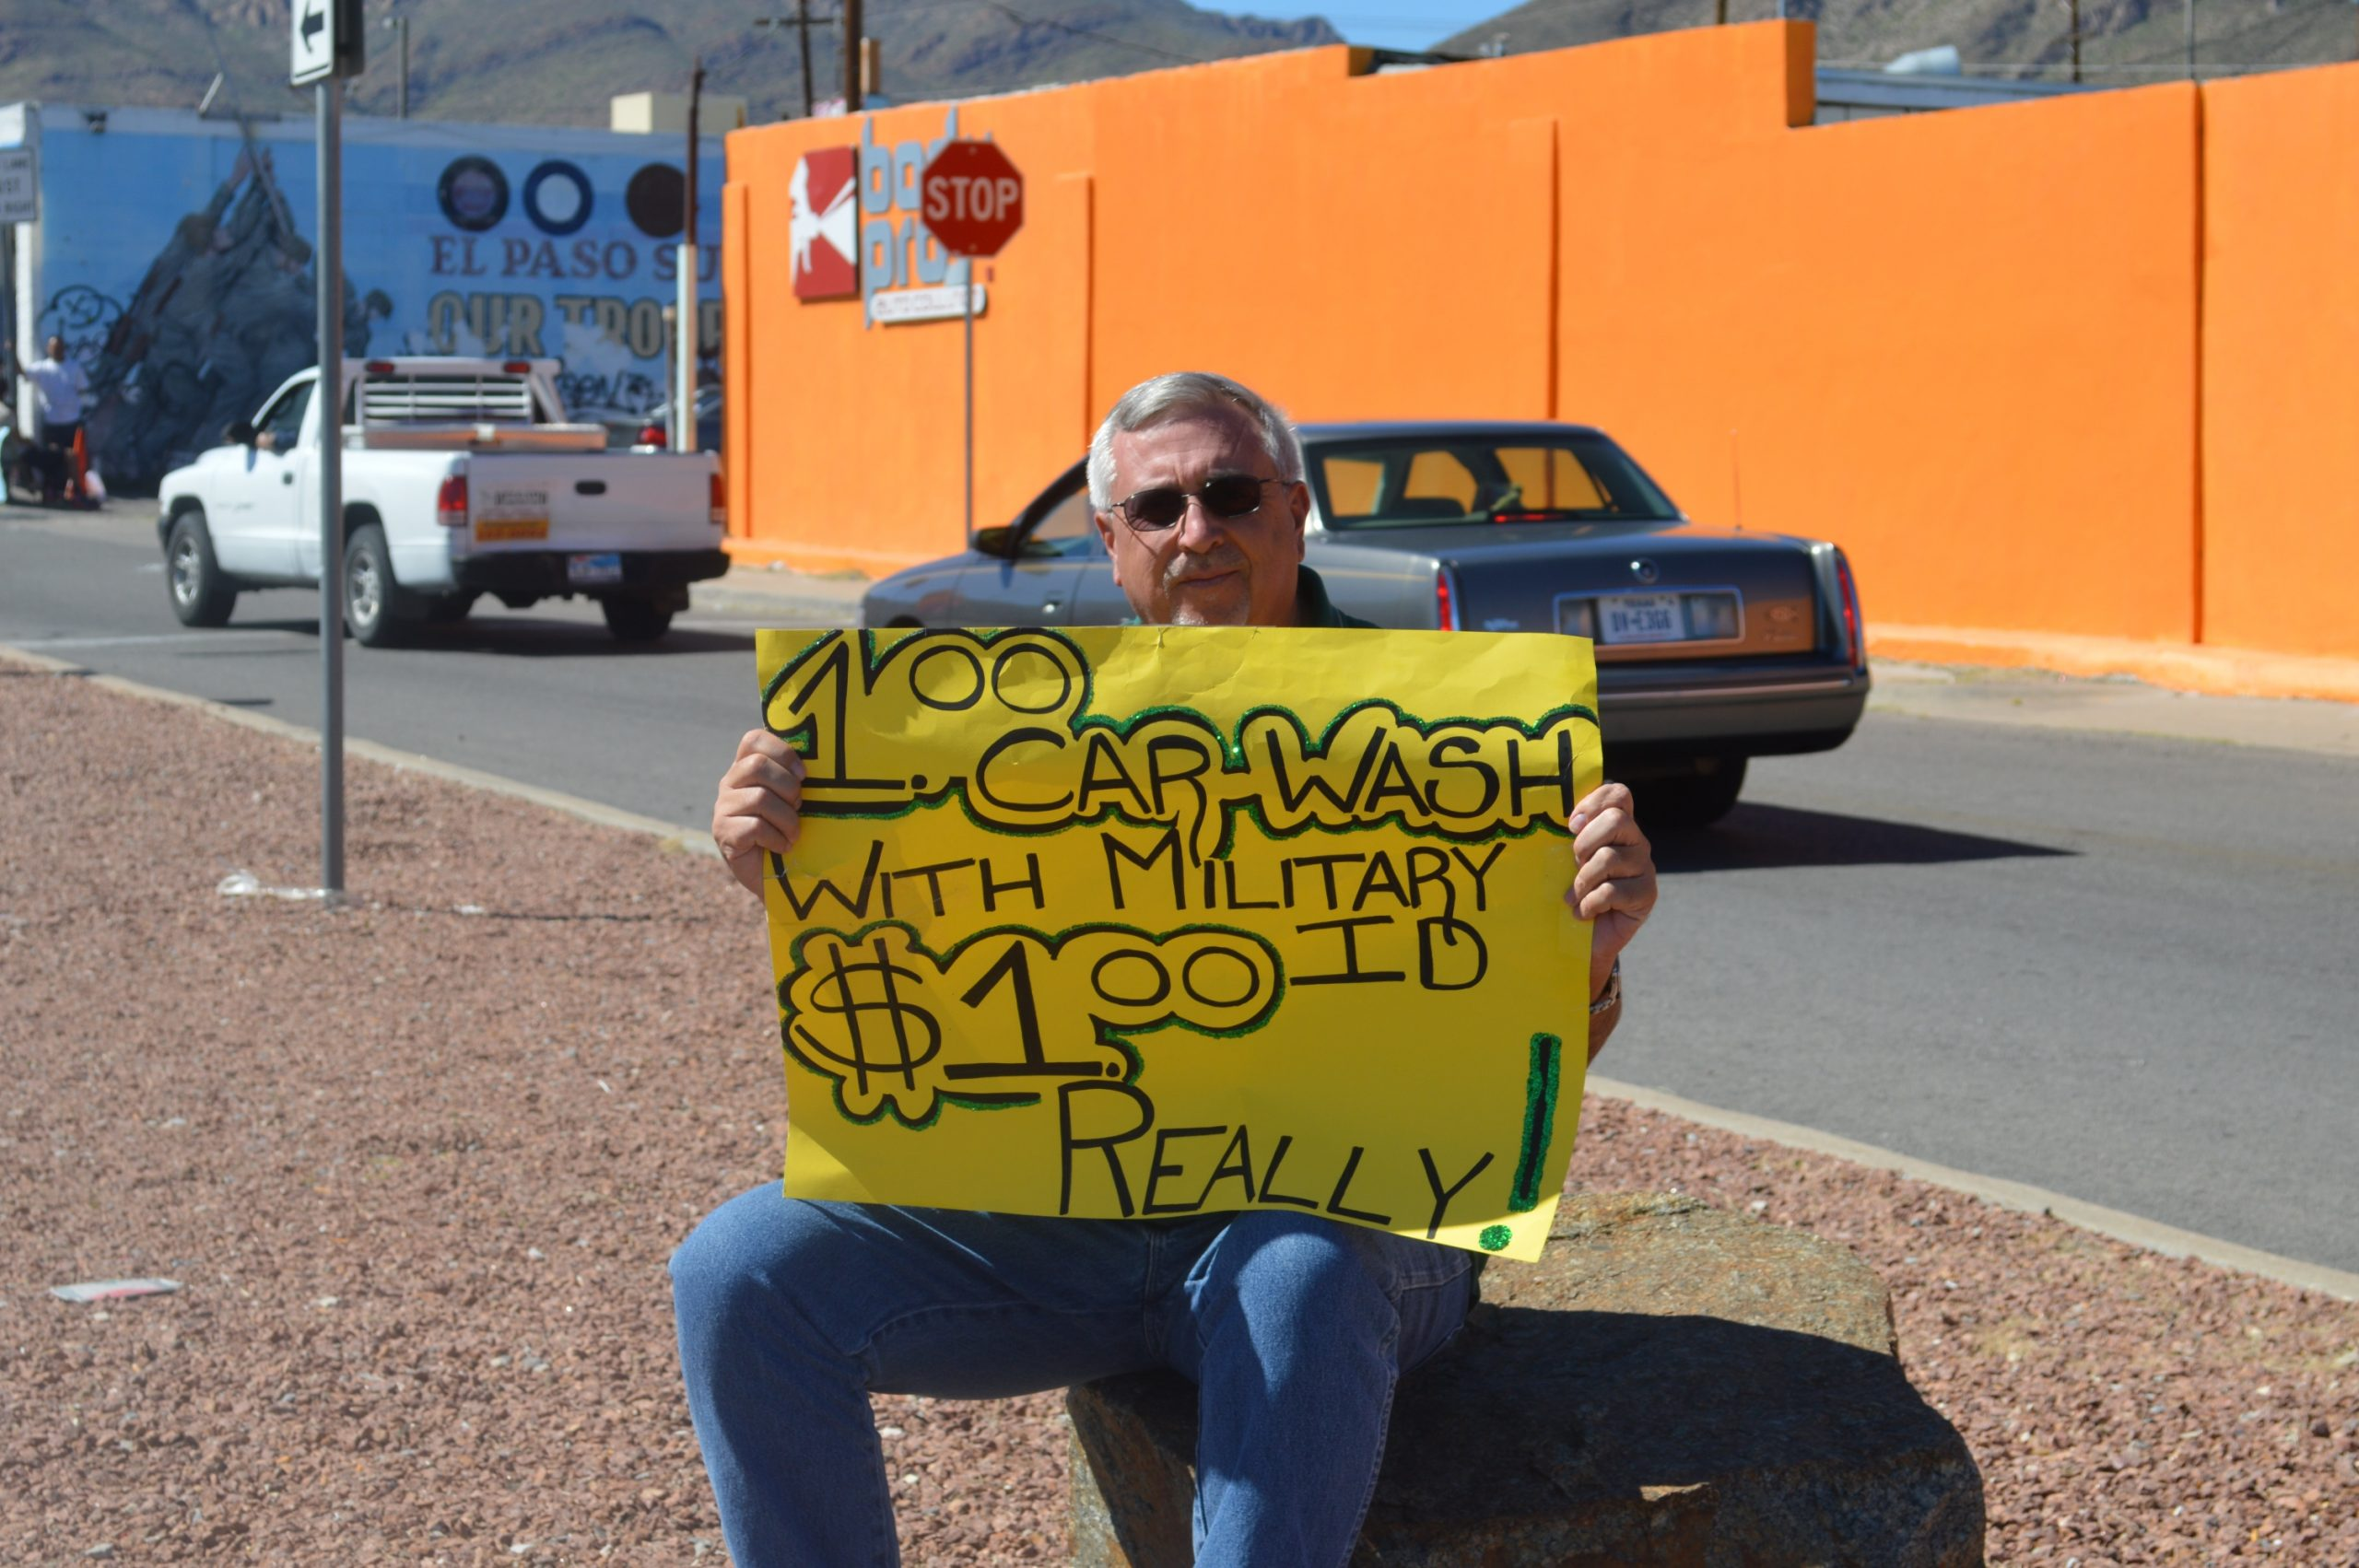 $1.00 Military Car Wash. Only $1.00 – Really!